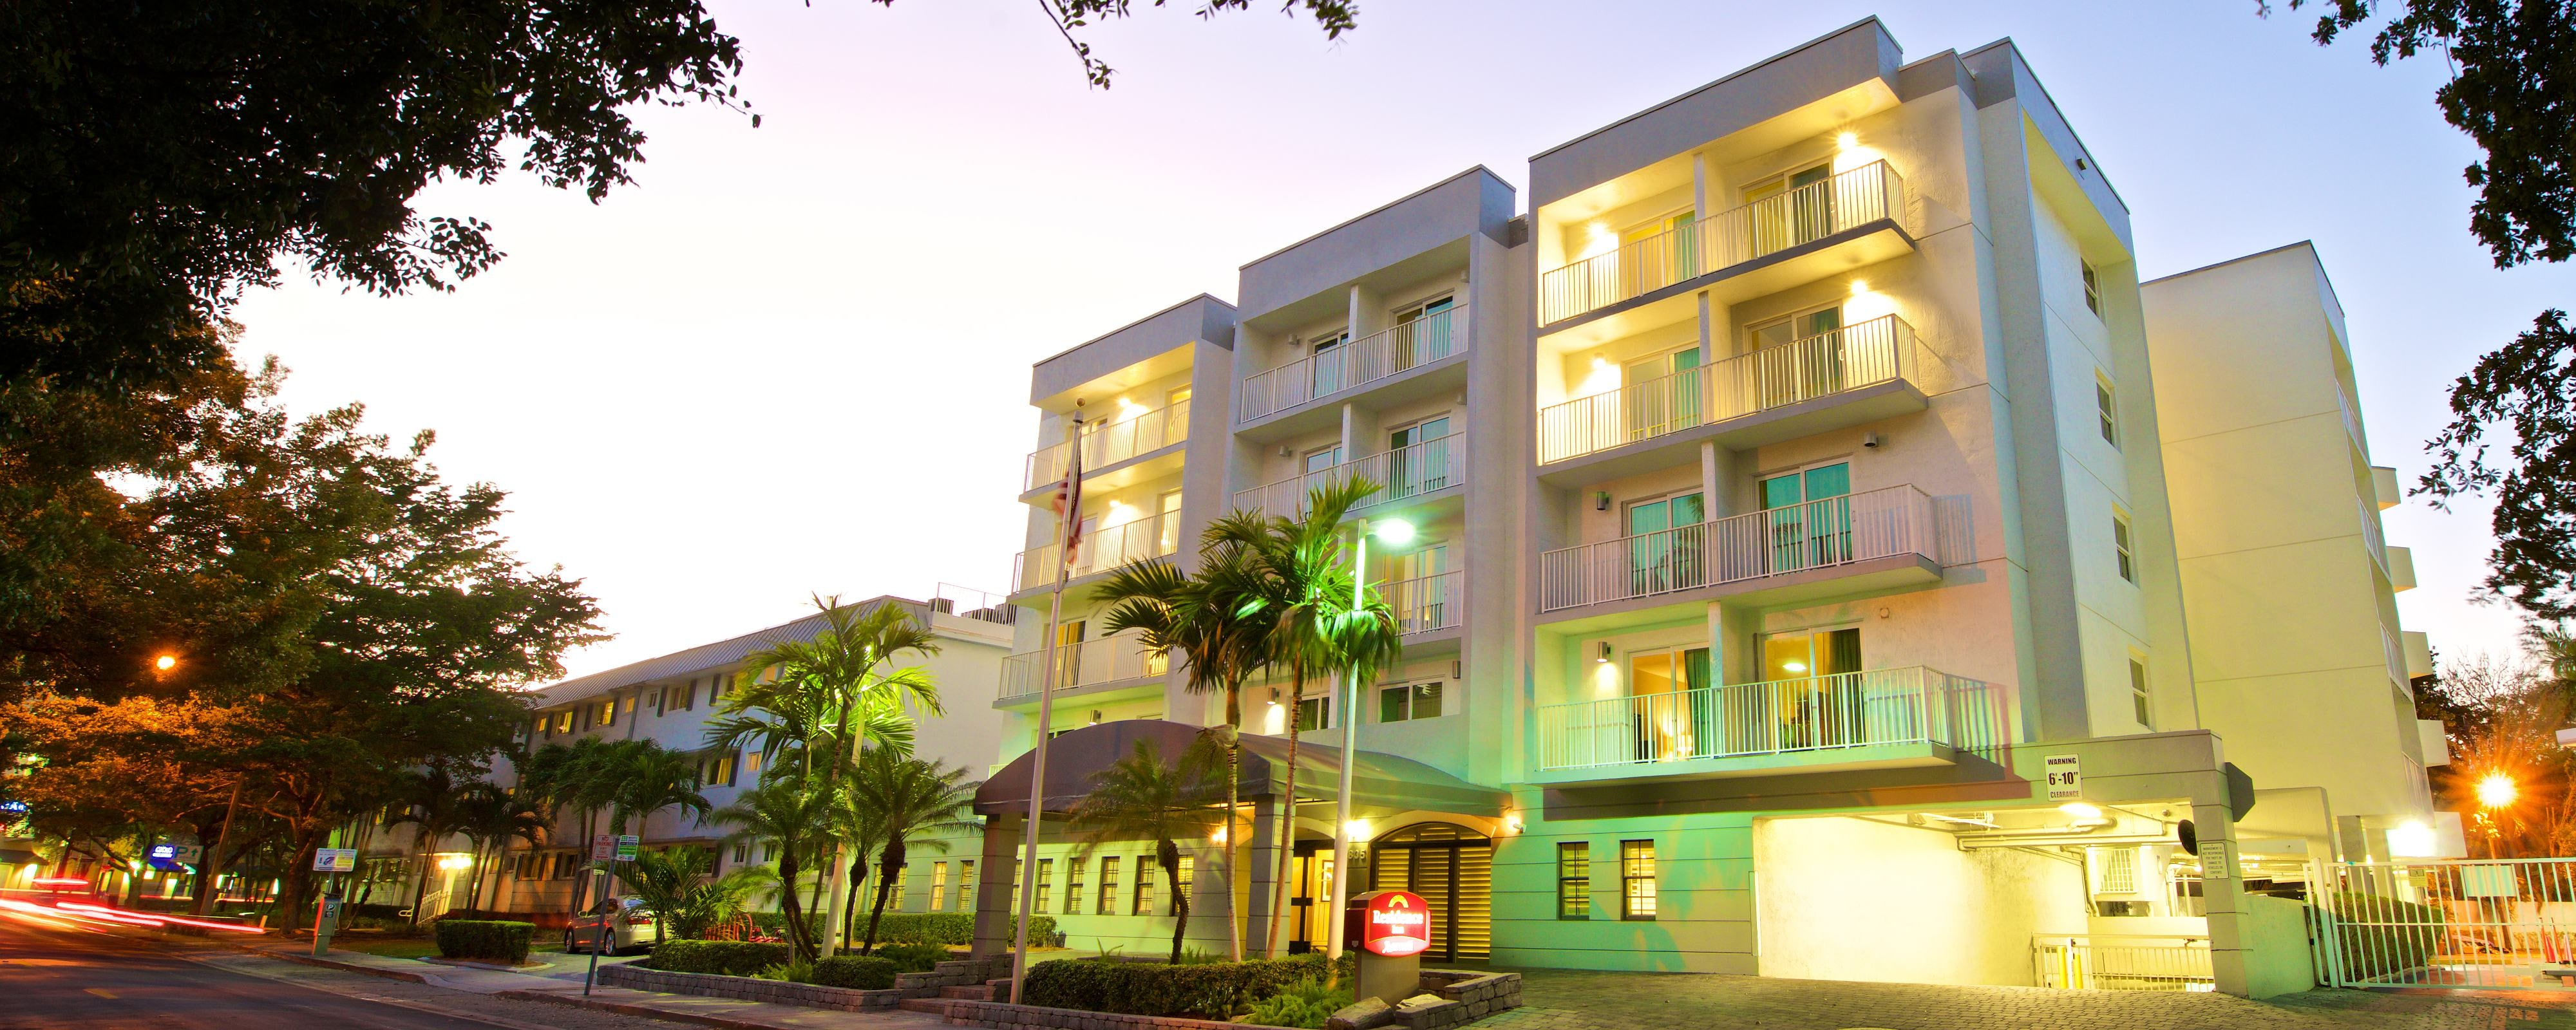 Hotels Near Coral Gables Fl Residence Inn Miami Coconut Grove